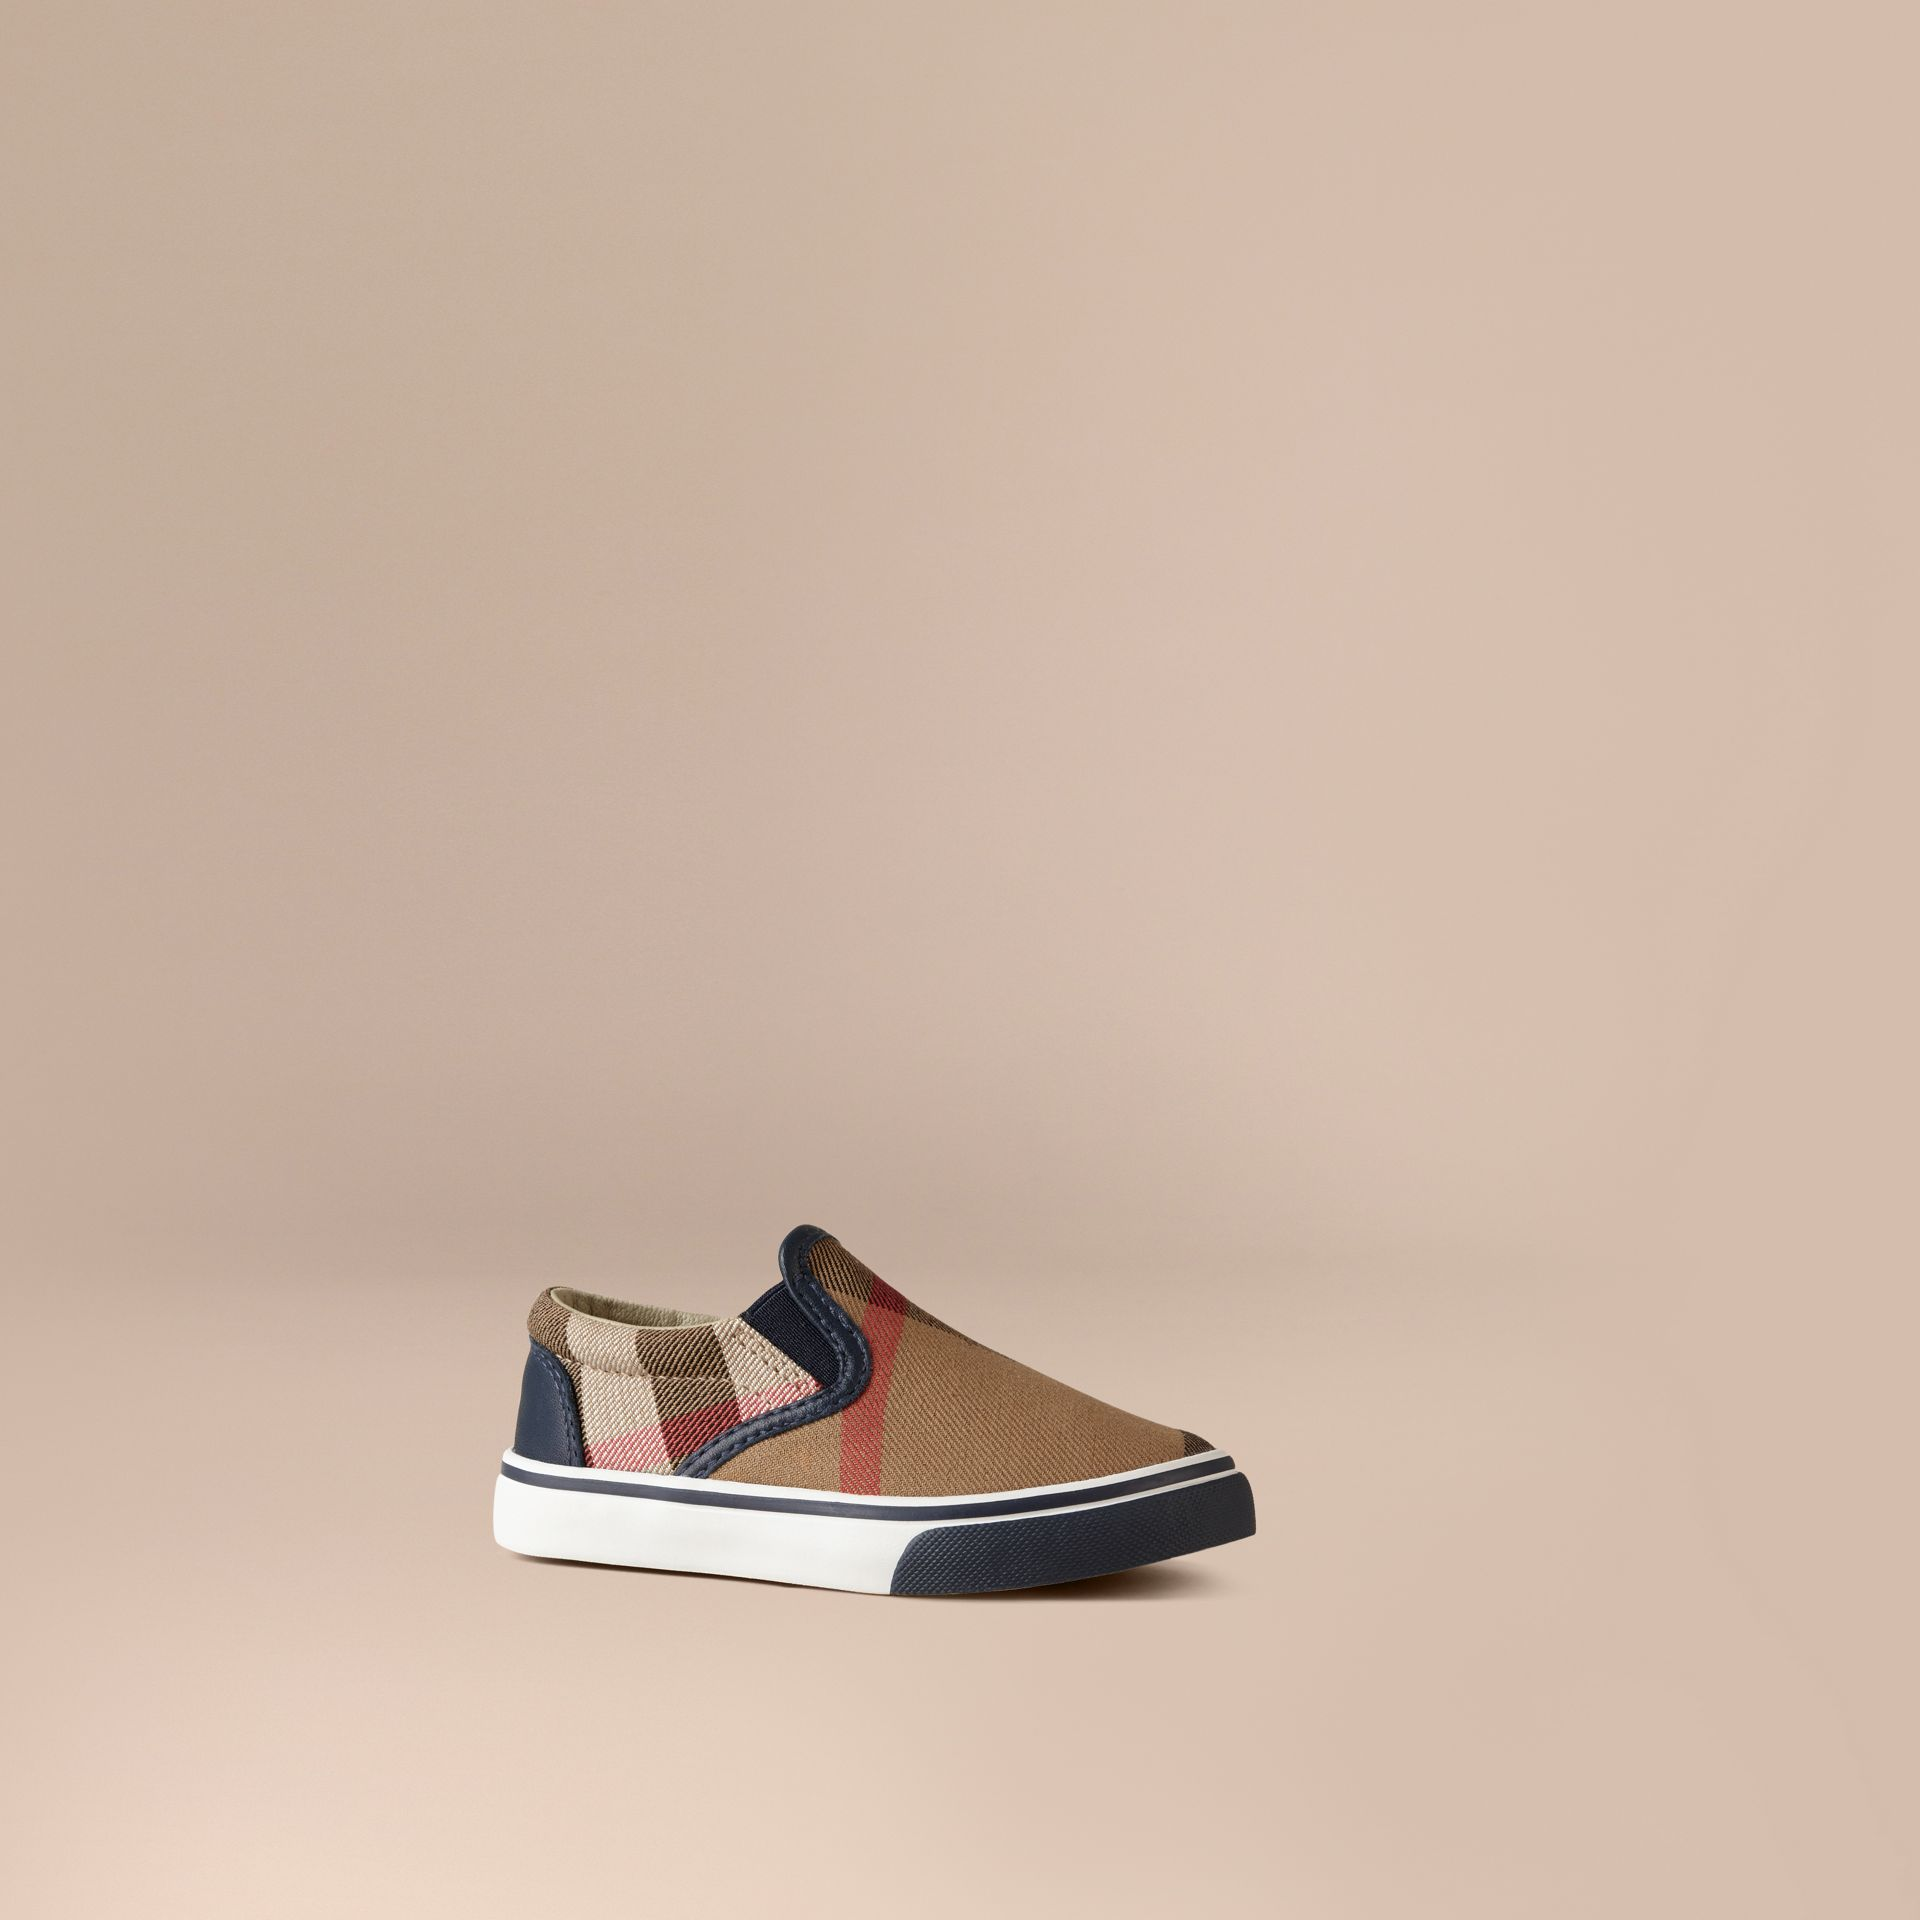 House Check Cotton Slip-On Trainers in Navy | Burberry Canada - gallery image 1